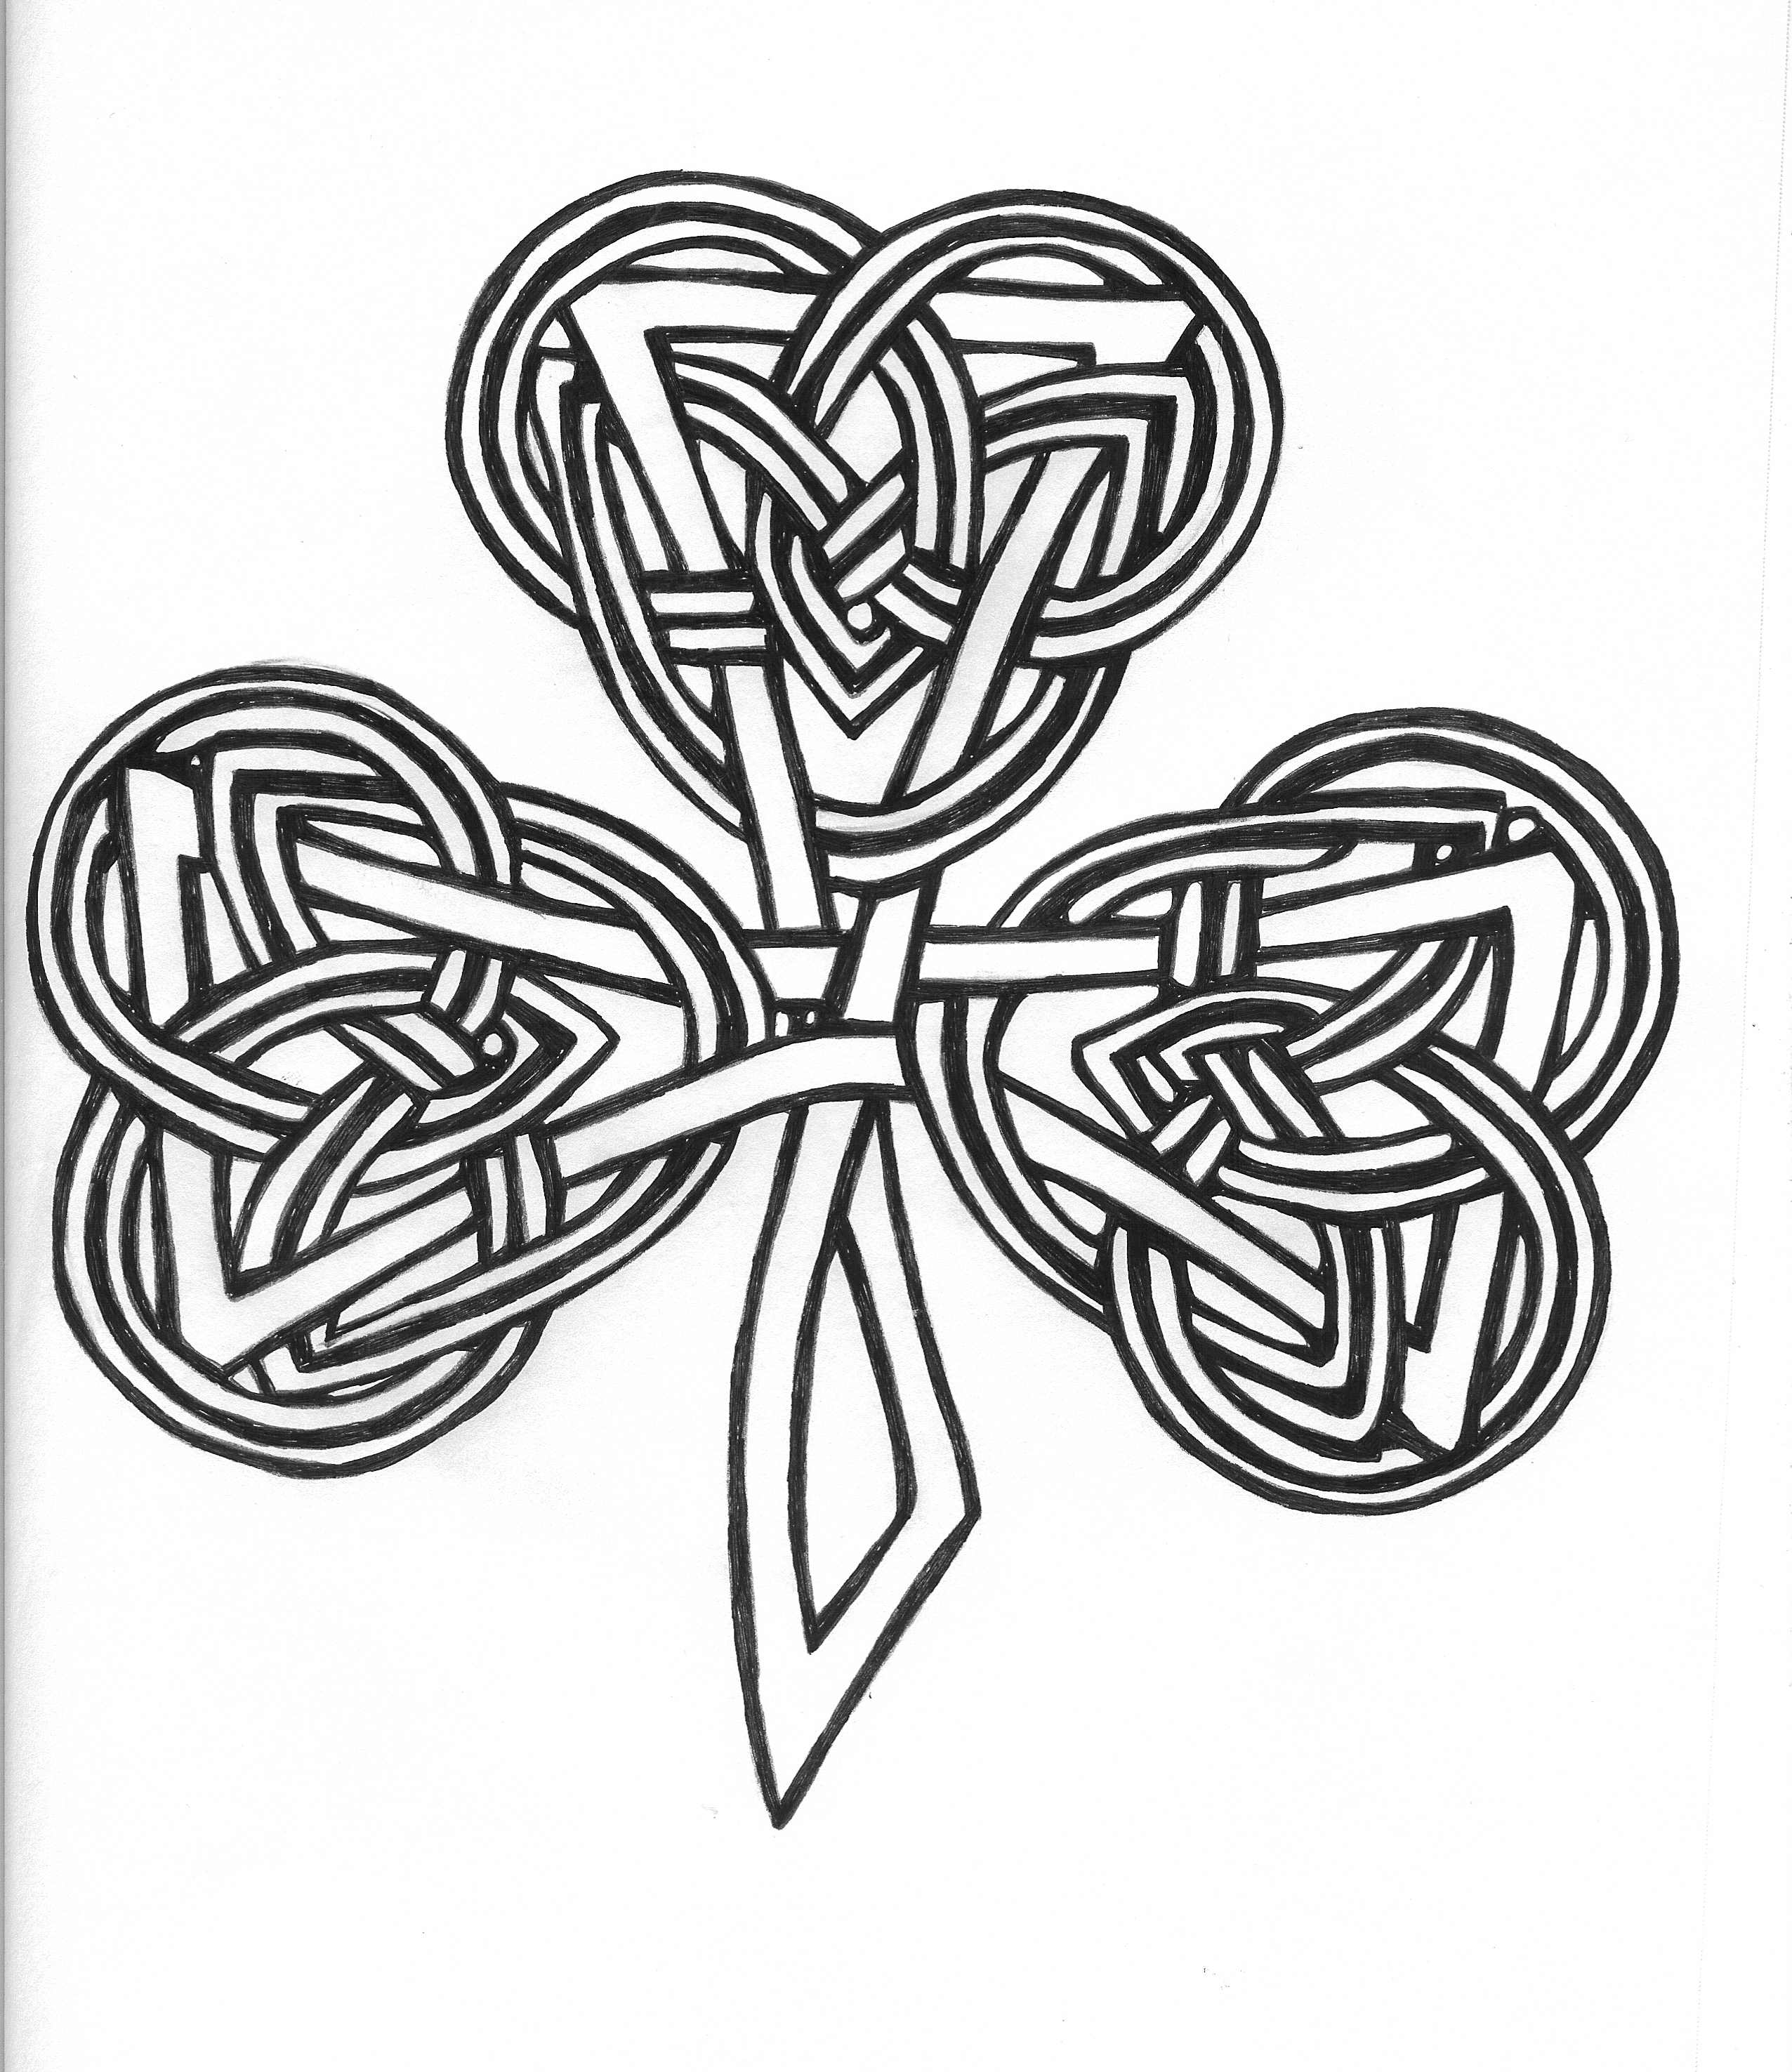 2552x2951 Clover Tattoos 786x1017 Cool Coloring Pages Soccer Clubs Logos Celtic